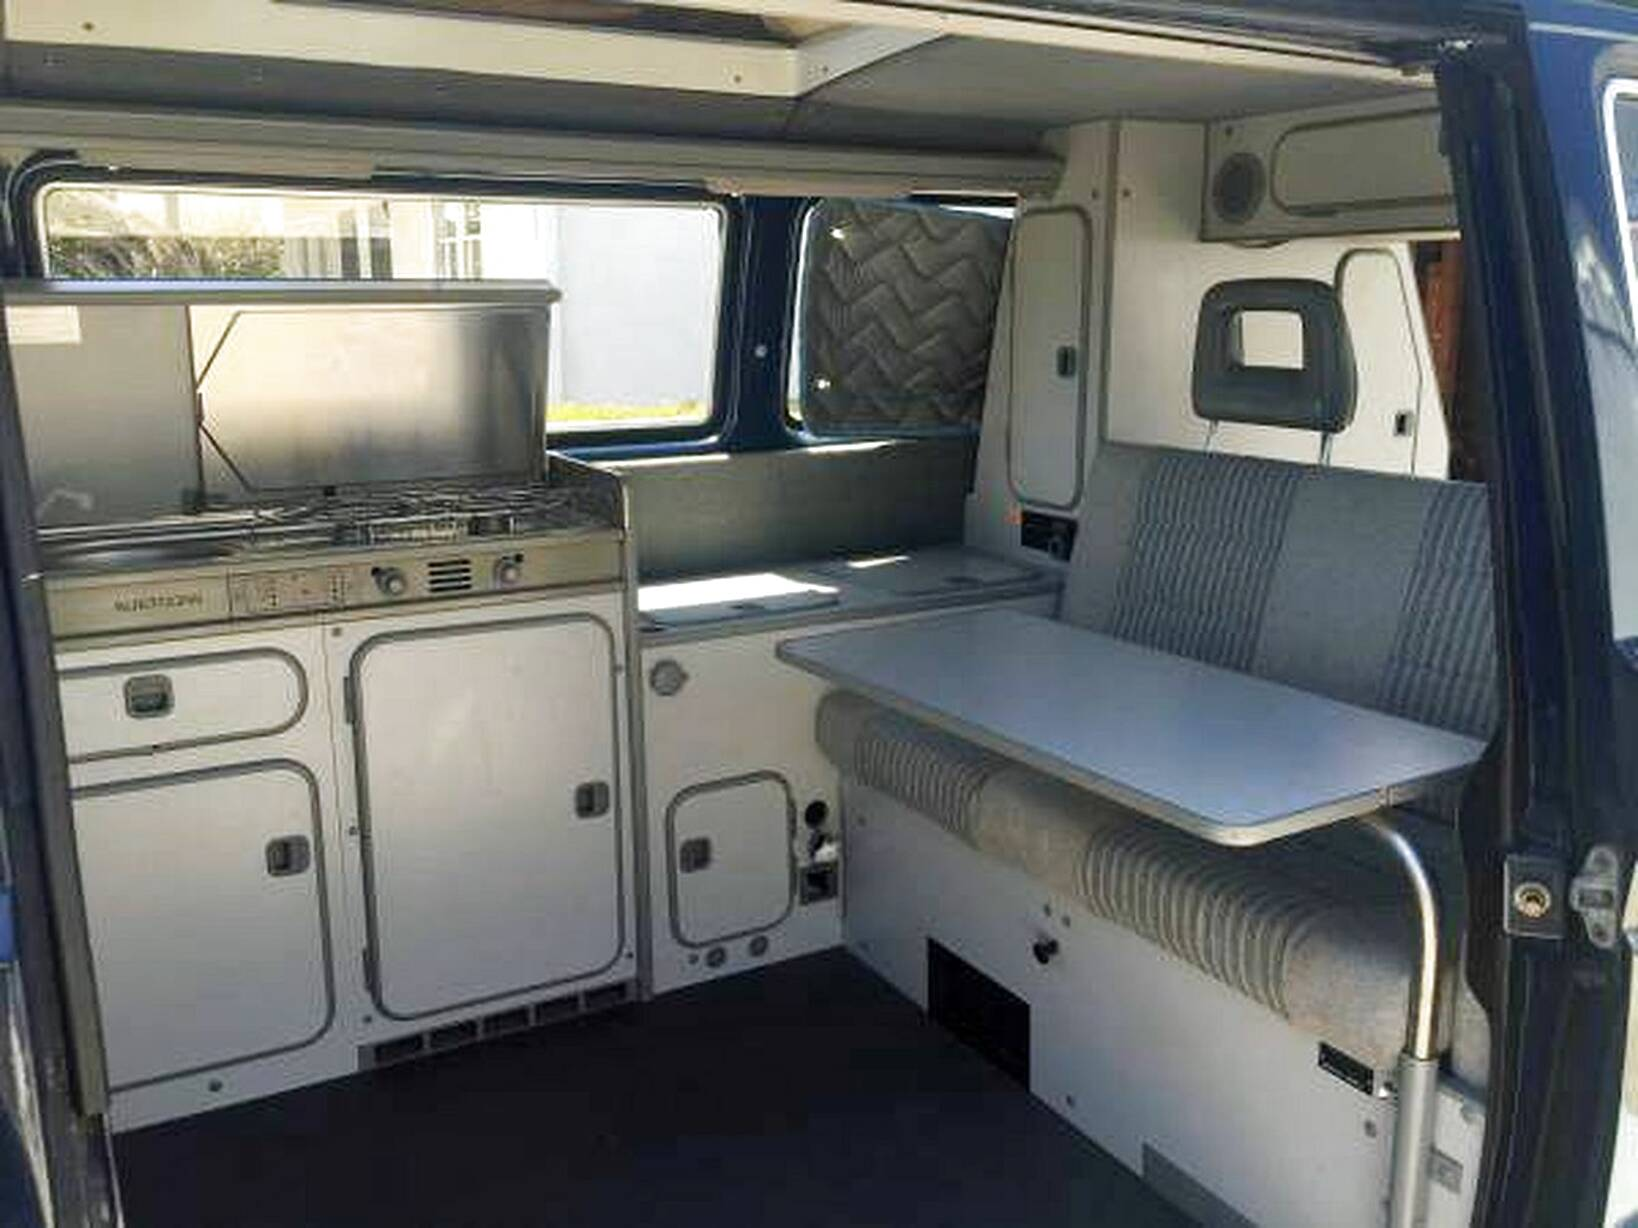 Vw Westfalia Interior For Sale In Uk View 55 Bargains